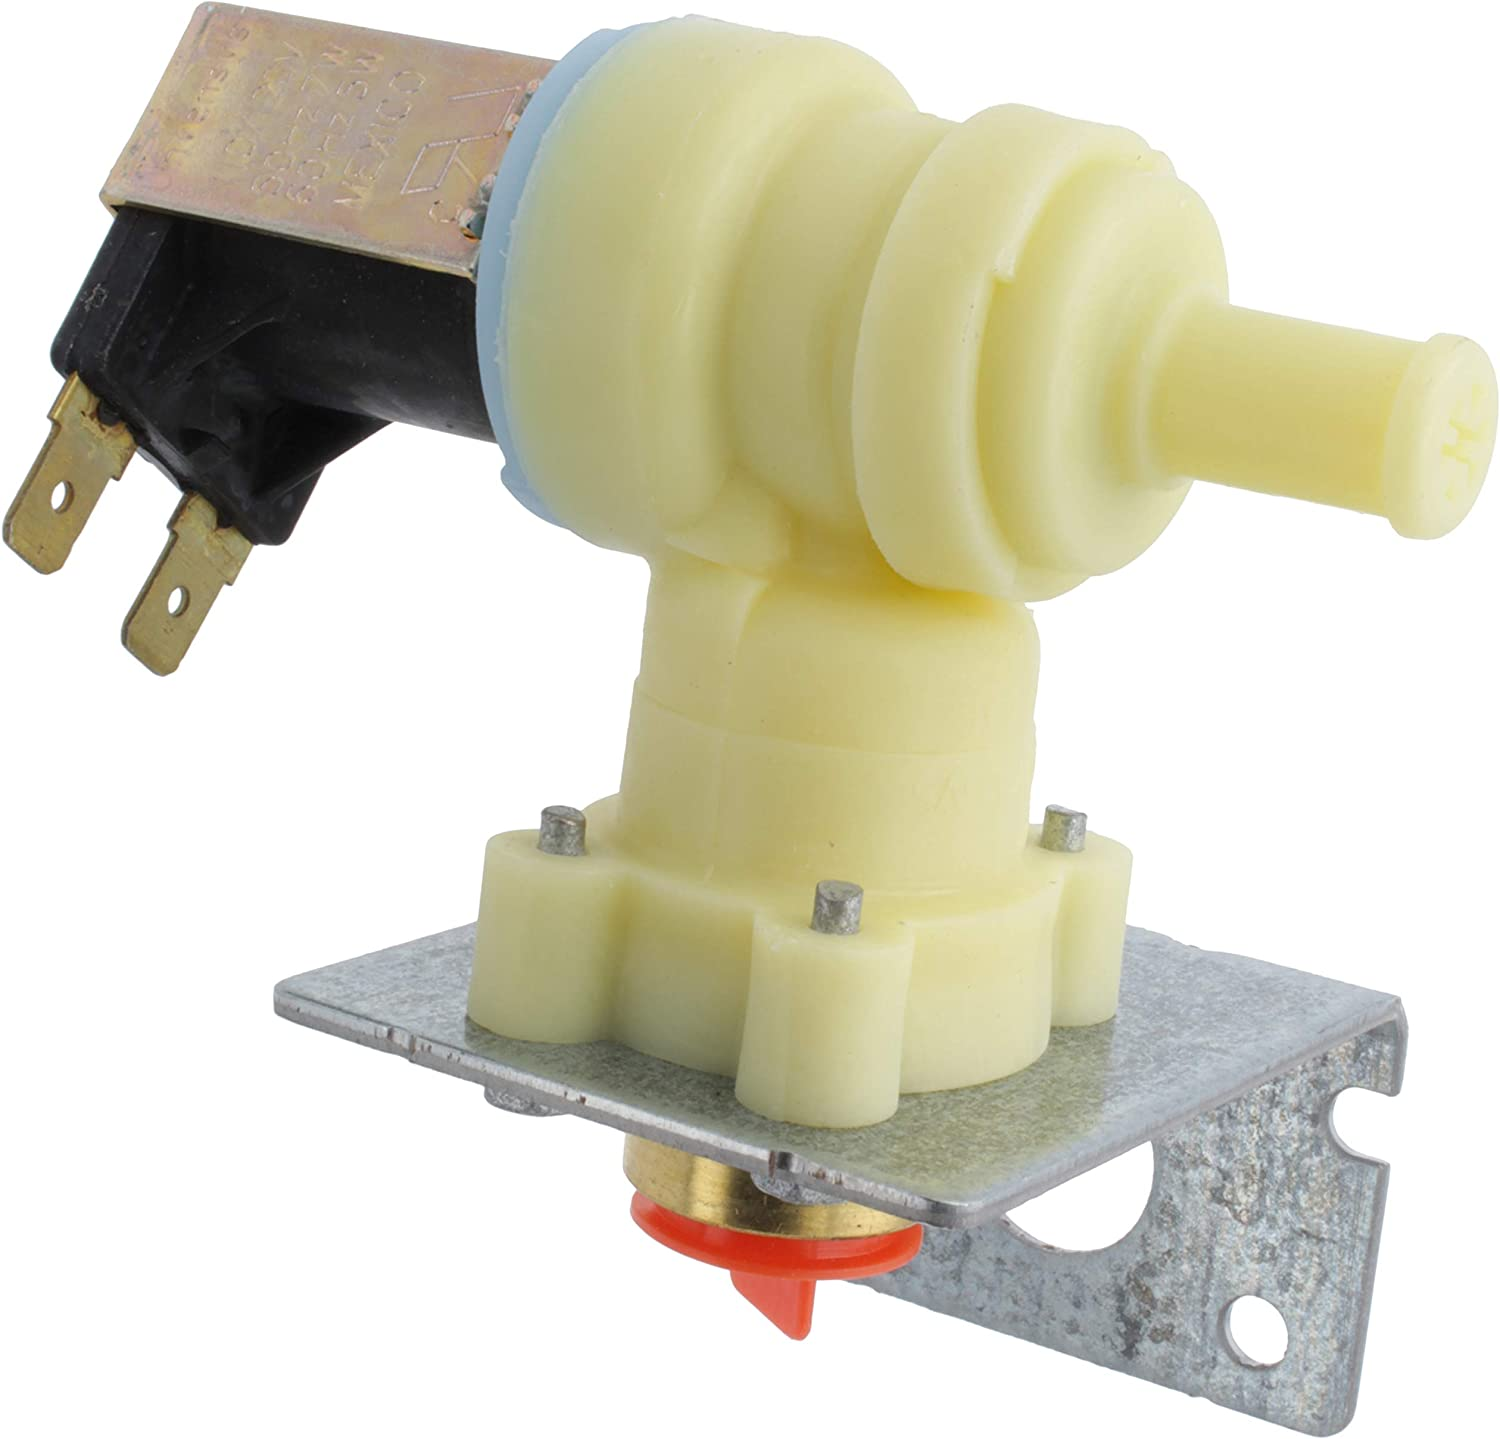 Supplying Demand 6-920534 Dishwasher Inlet Valve Compatible With Whirlpool Fits W11082871 99002975